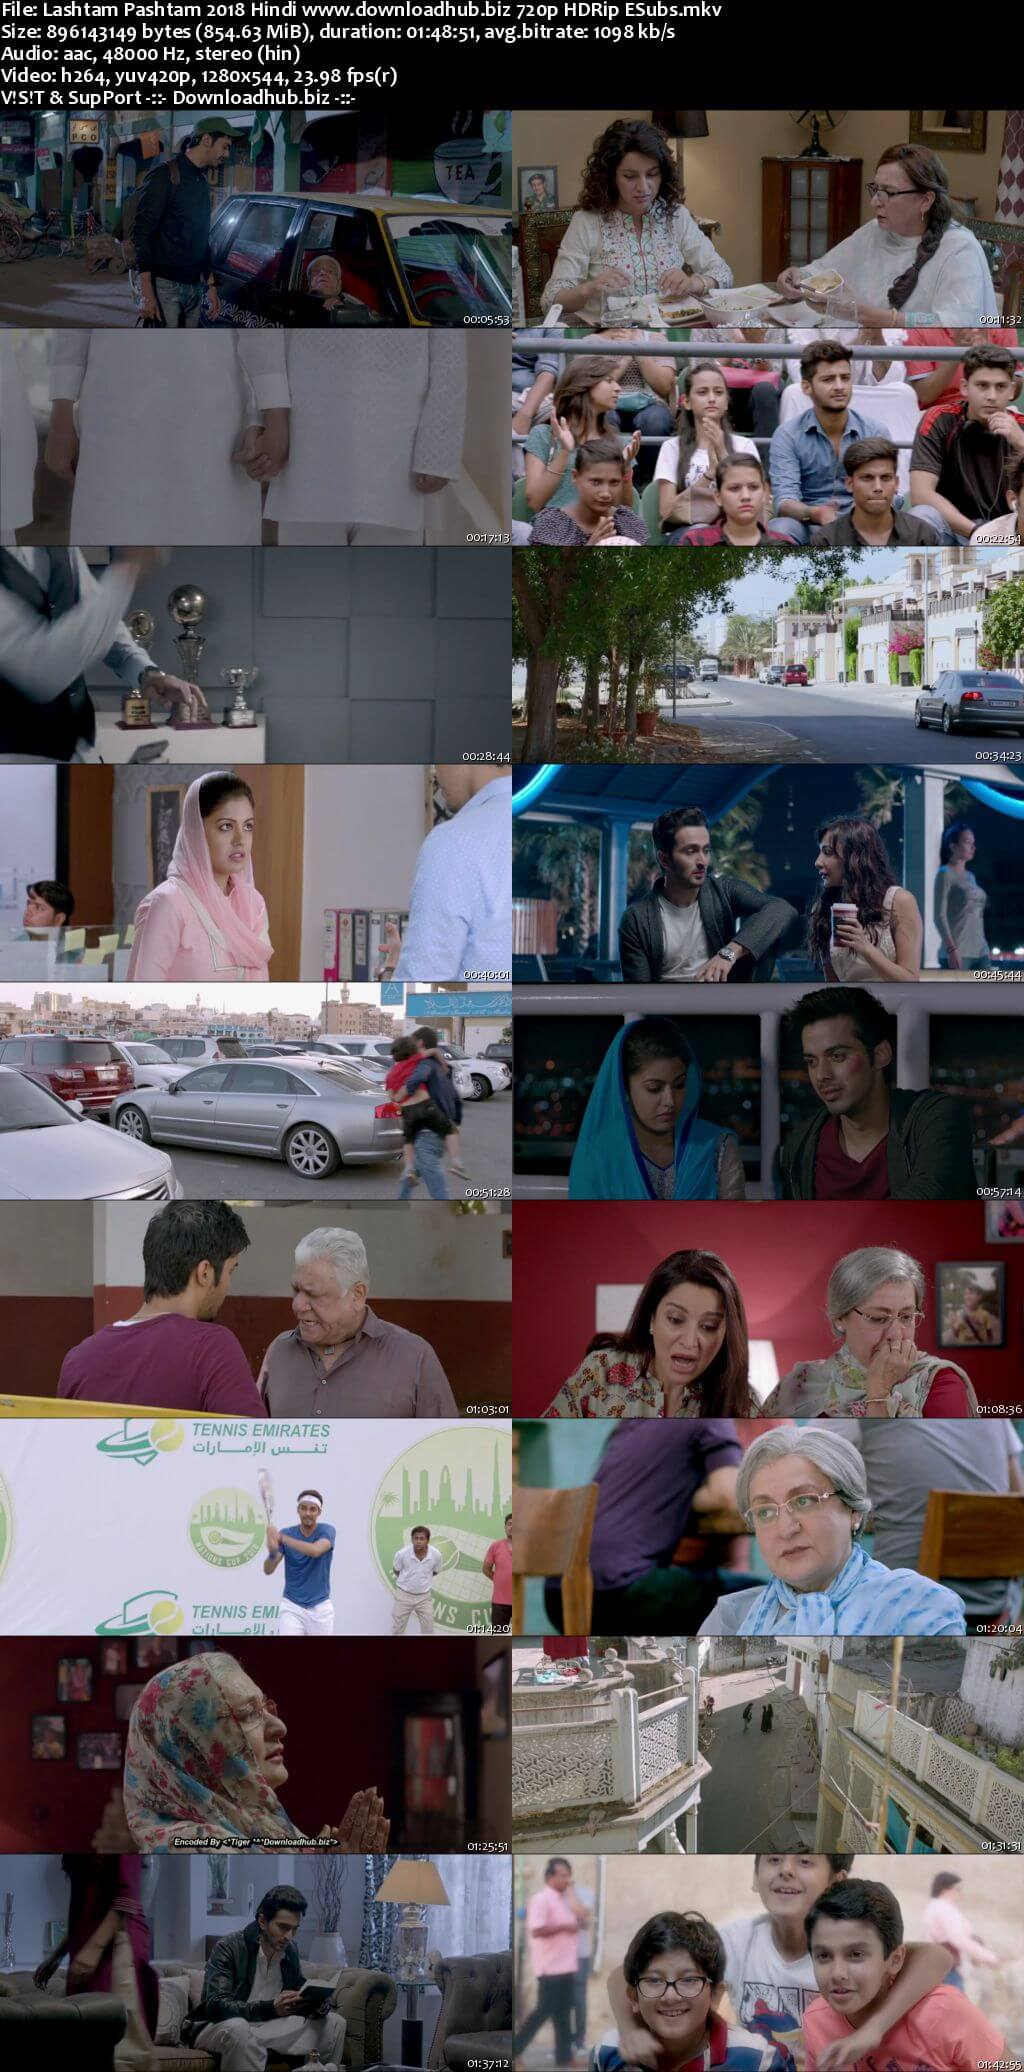 Lashtam Pashtam 2018 Hindi 720p HDRip ESubs